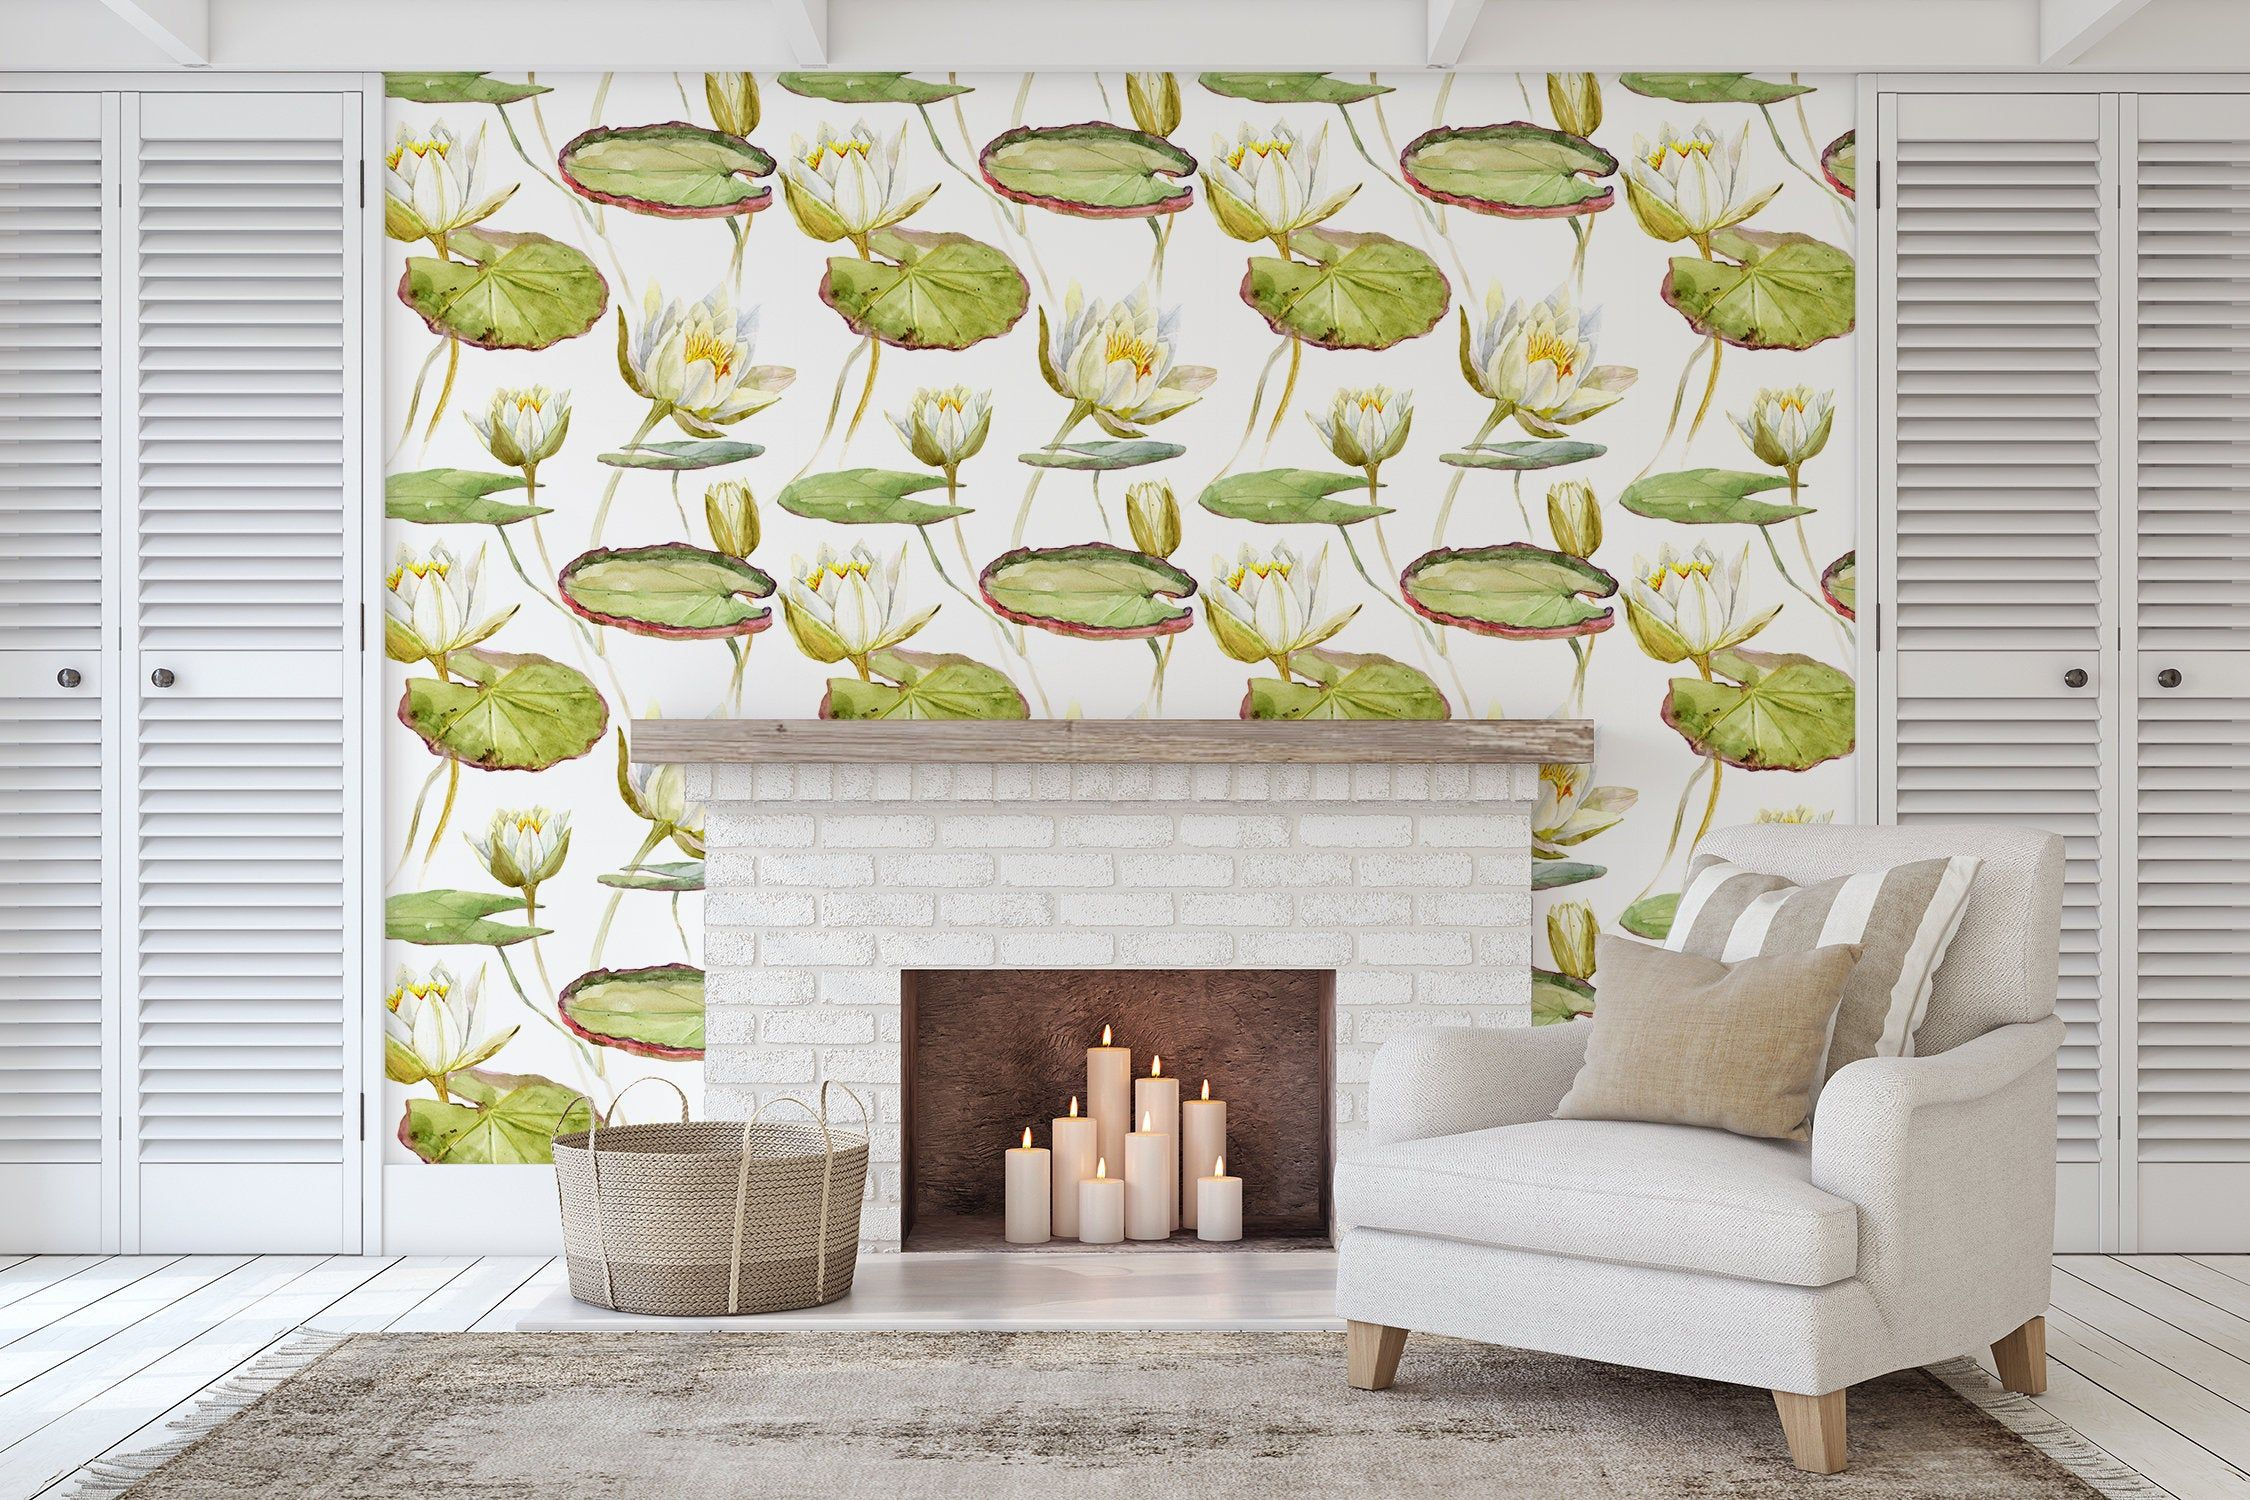 Removable Peel And Stick Wallpaper Lily Pad Plant Wallpaper Etsy Peel And Stick Wallpaper Plant Wallpaper Lily Pads